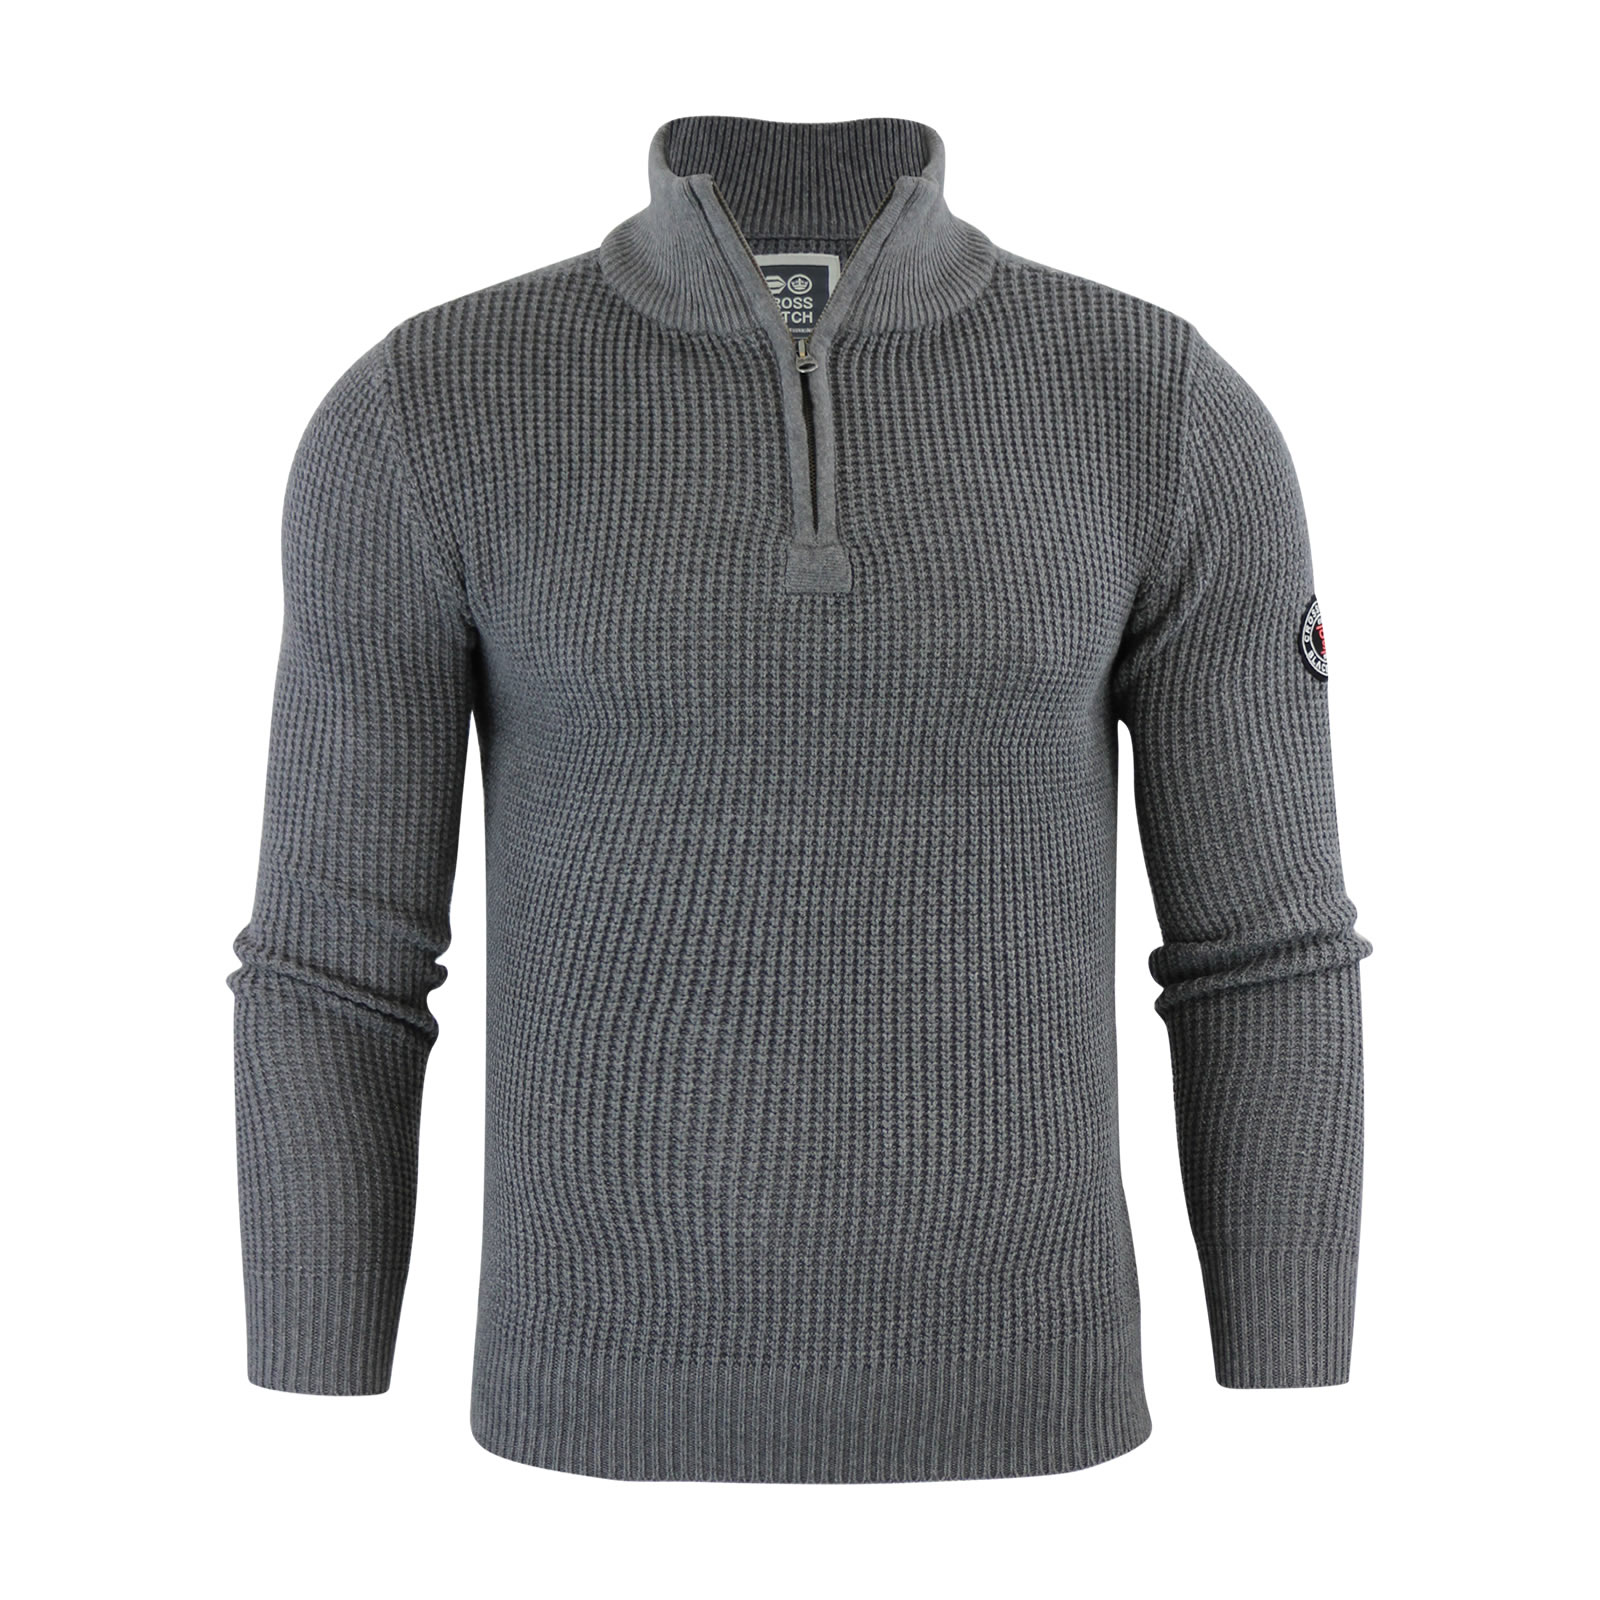 Mens Jumper Crosshatch General Waffle Knitted Crew Neck Wool Mix Sweater eBay